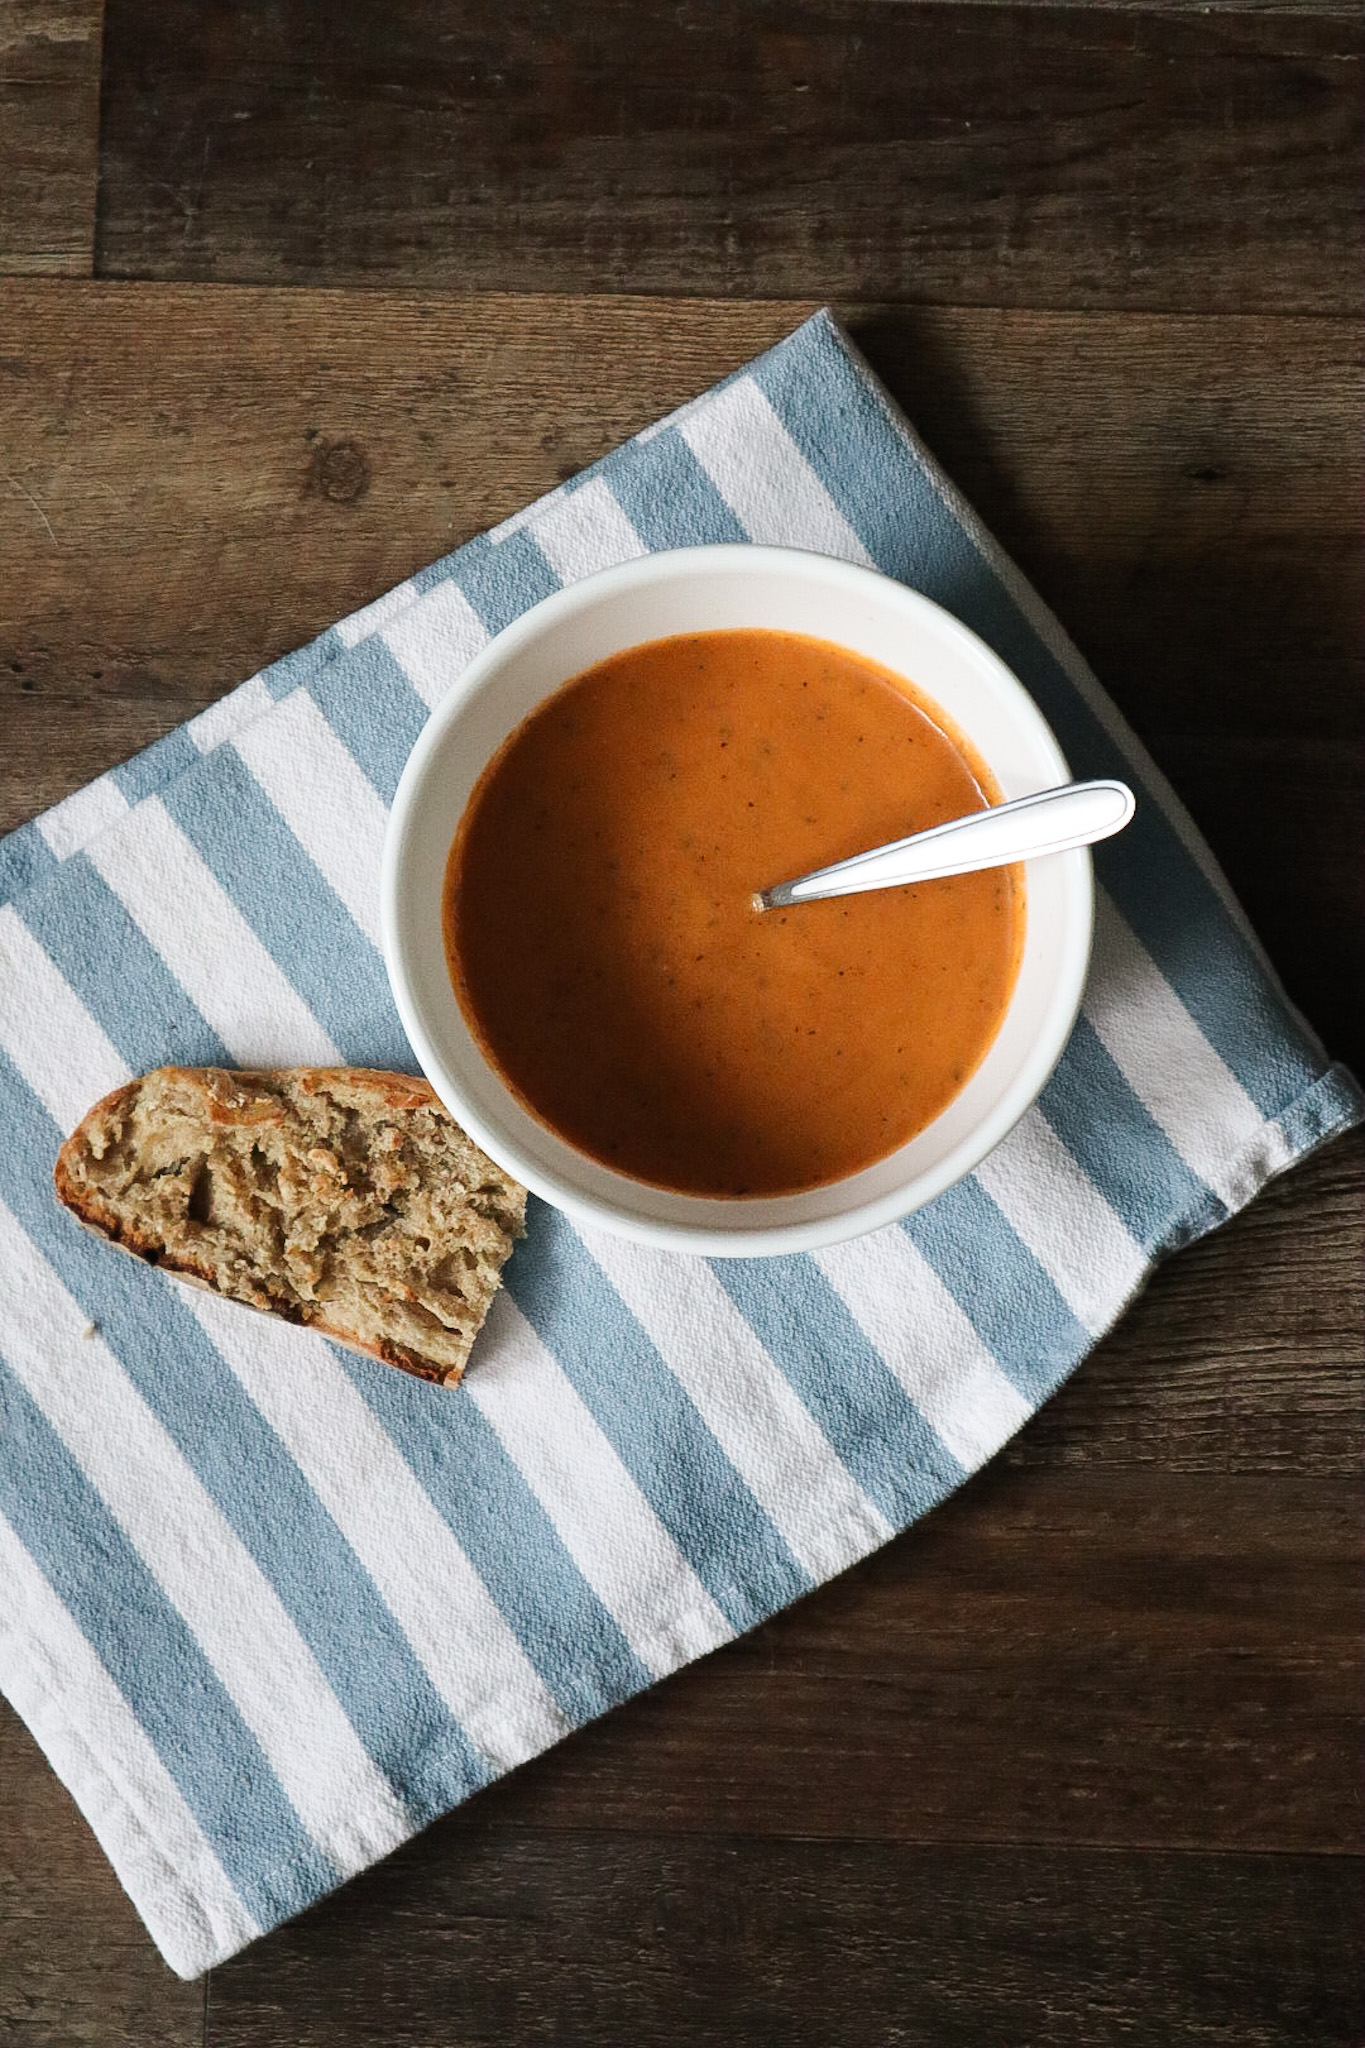 tomato soup paired with a slice of bread on a striped towel